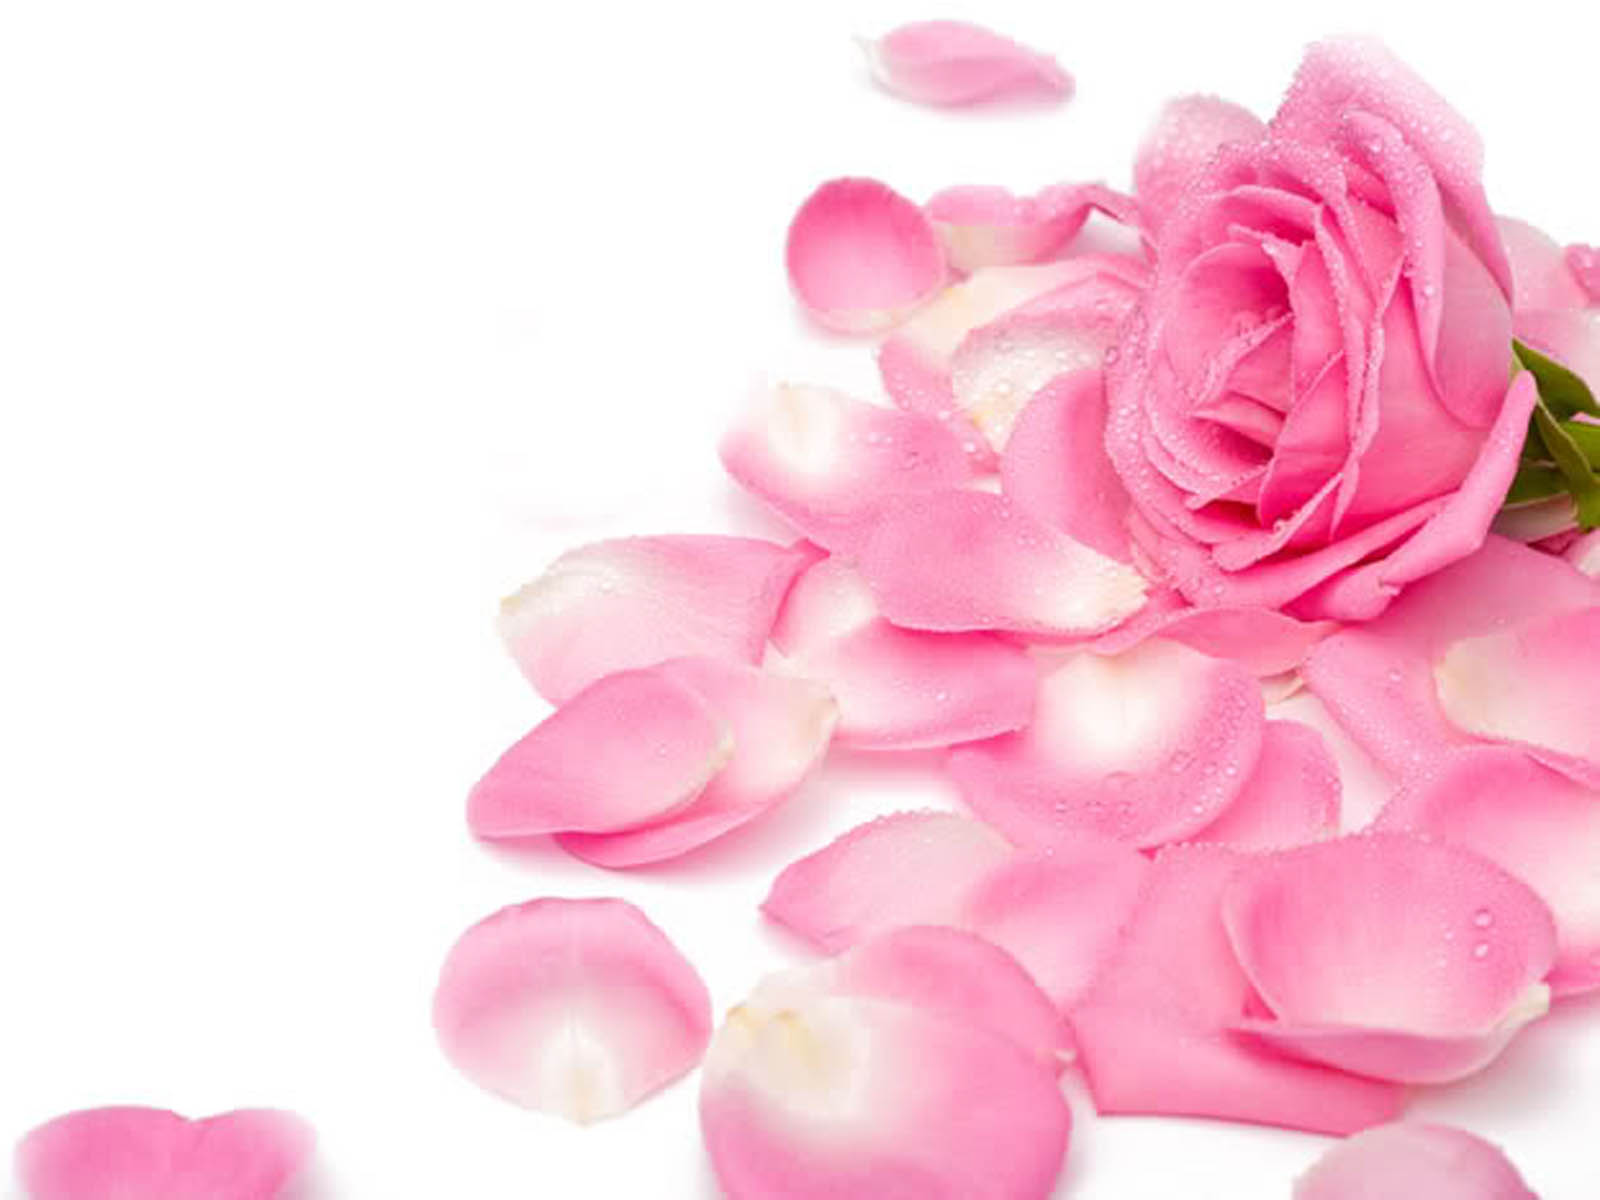 Falling Rose Petals Wallpaper Roses Images Pretty Pink Roses Hd Wallpaper And Background